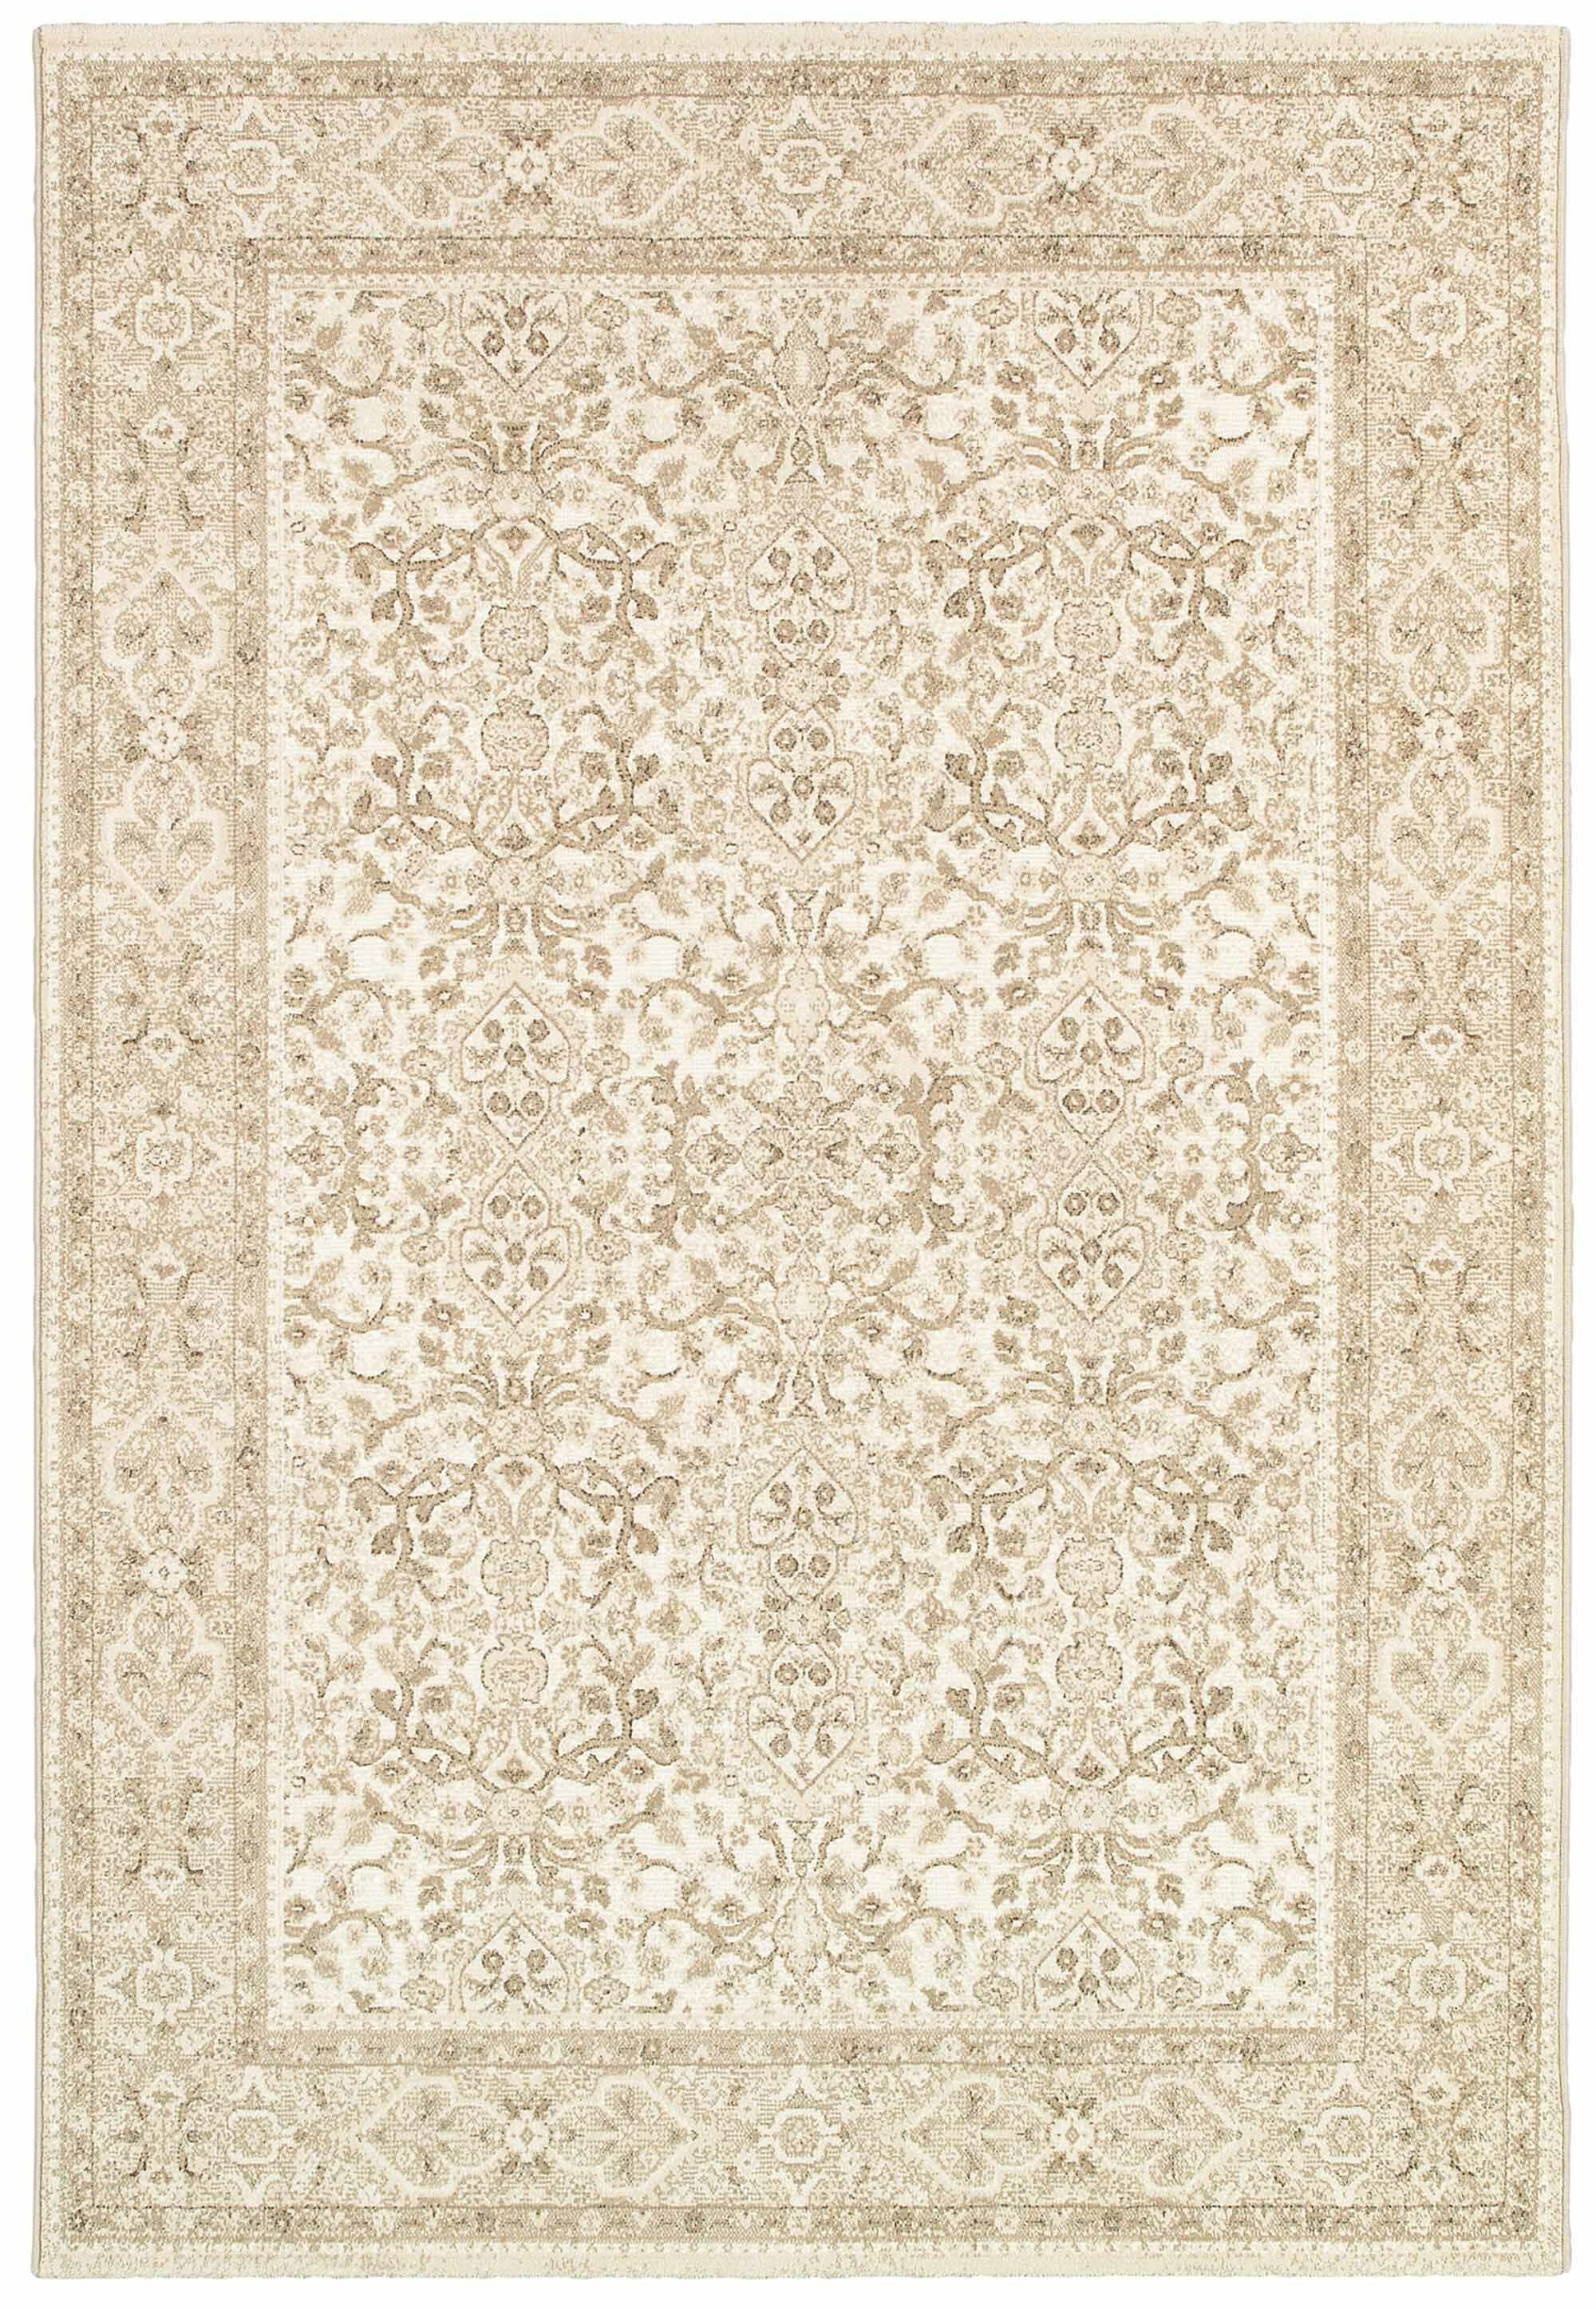 Duckett Champagne Area Rug Rug Size: Rectangle 5'3